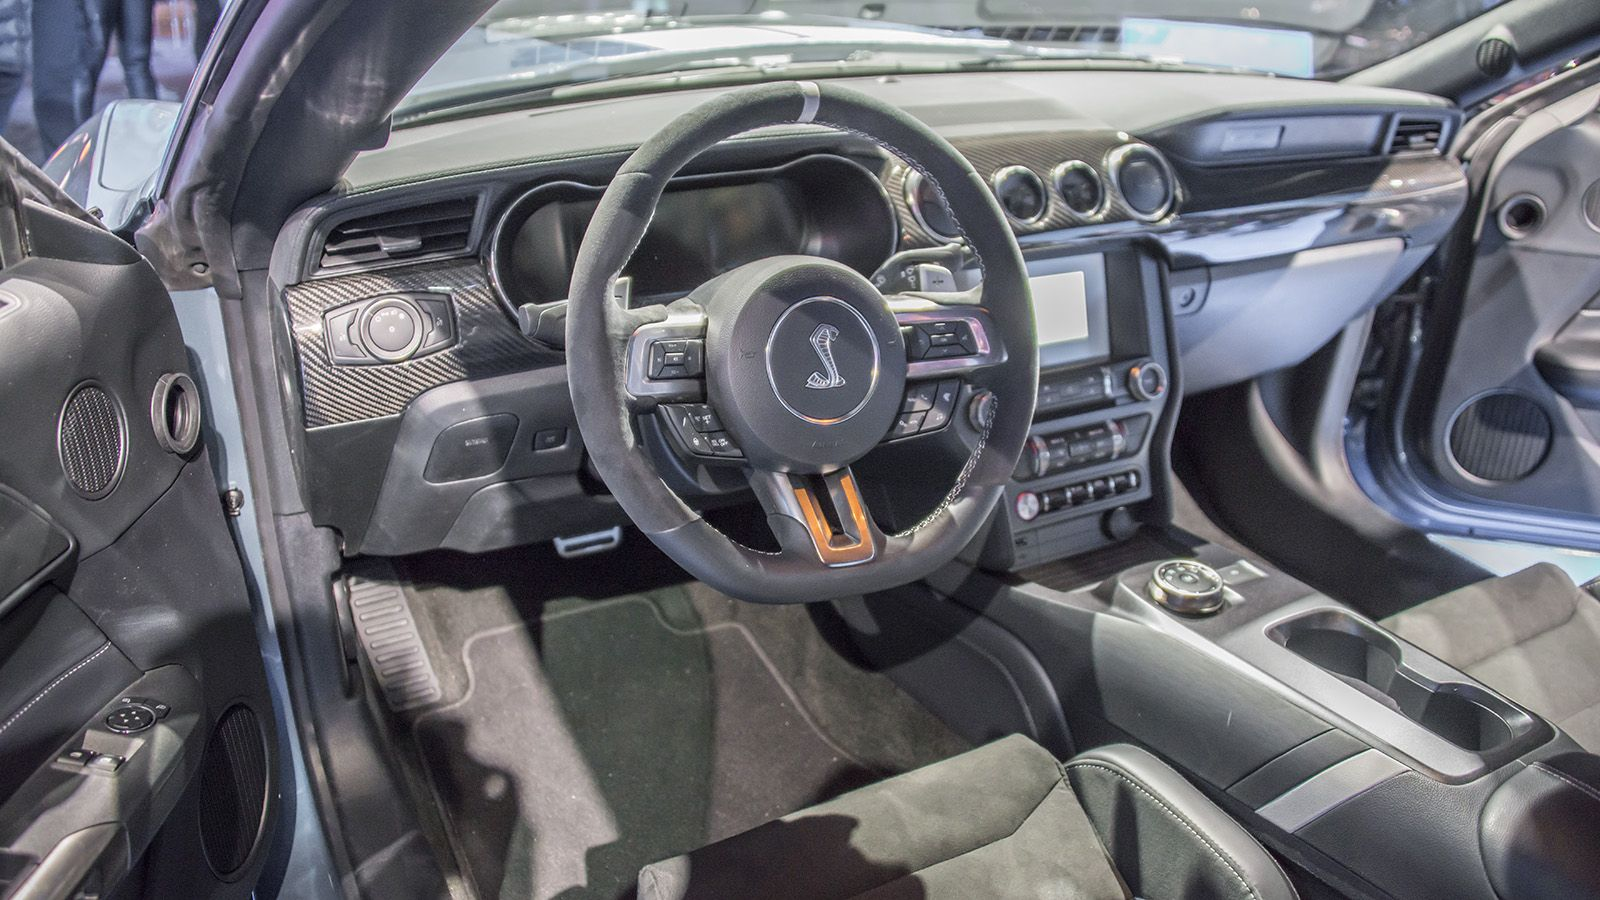 Gallery 2020 Ford Mustang Shelby Gt500 Interior